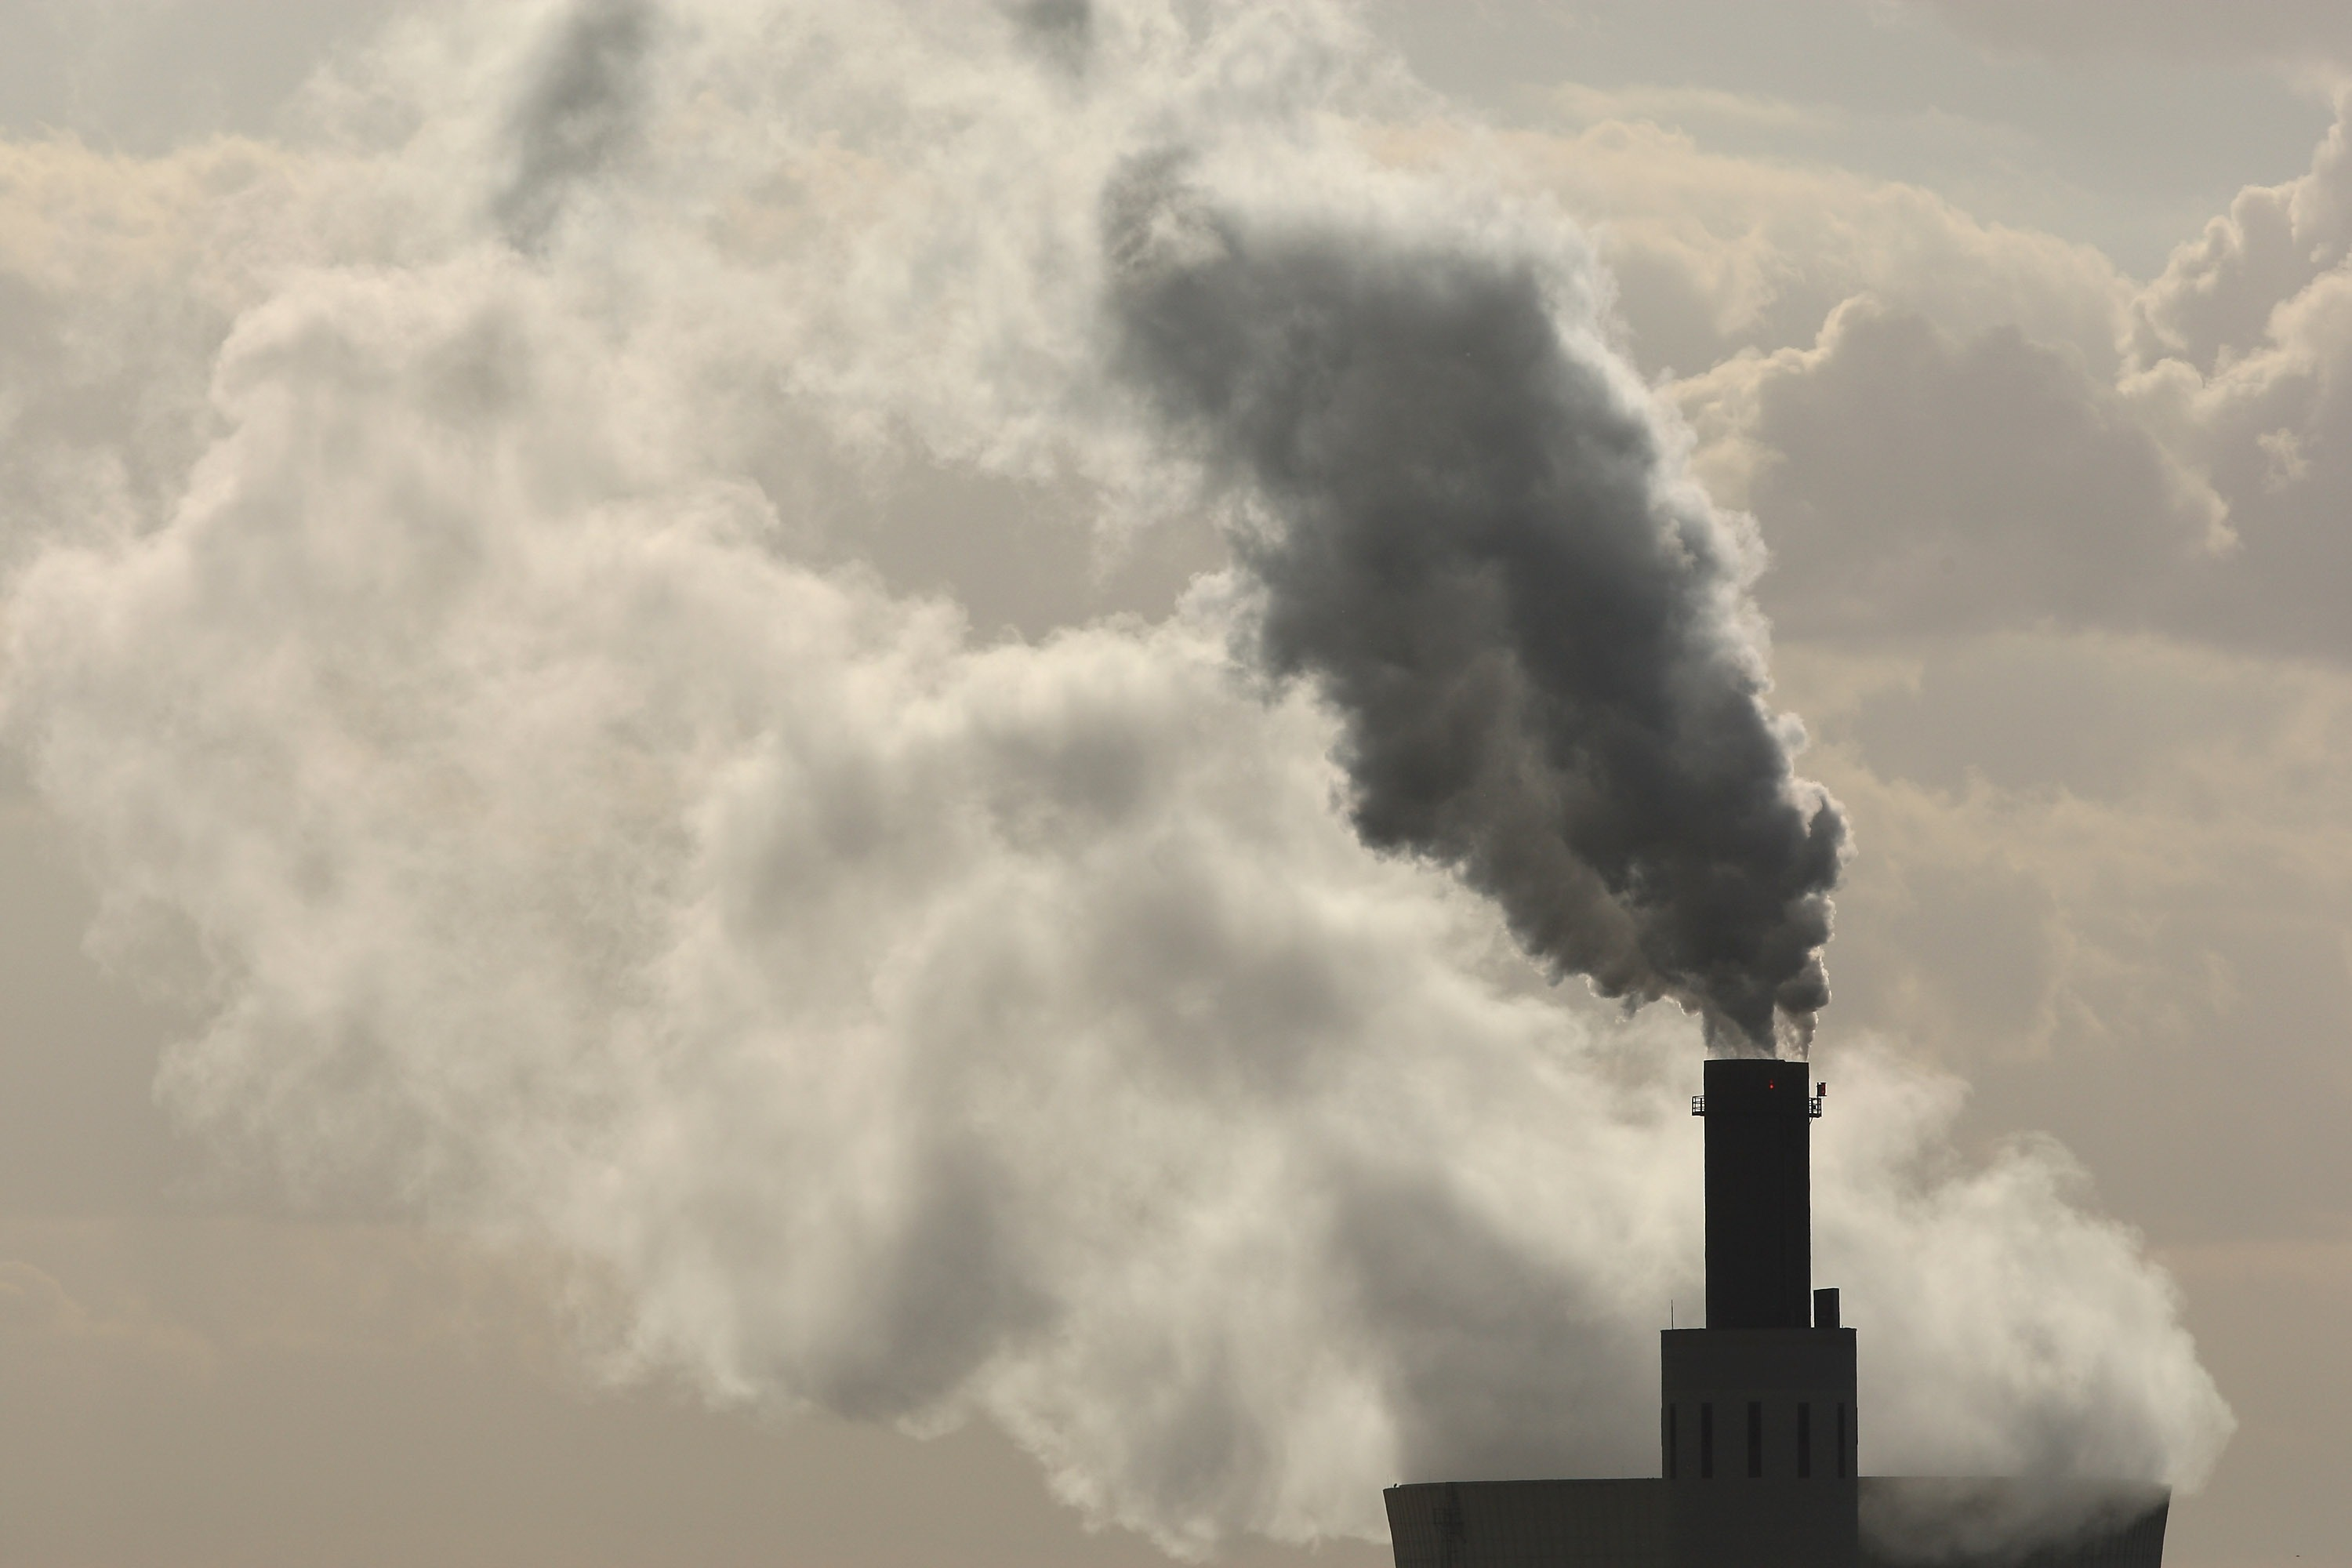 Exhaust rises from the main chimneys of the coal-fired power plant Heizkraftwerk Reuter West as steam rises from its cooling tower behind July 31, 2007 in Berlin, Germany